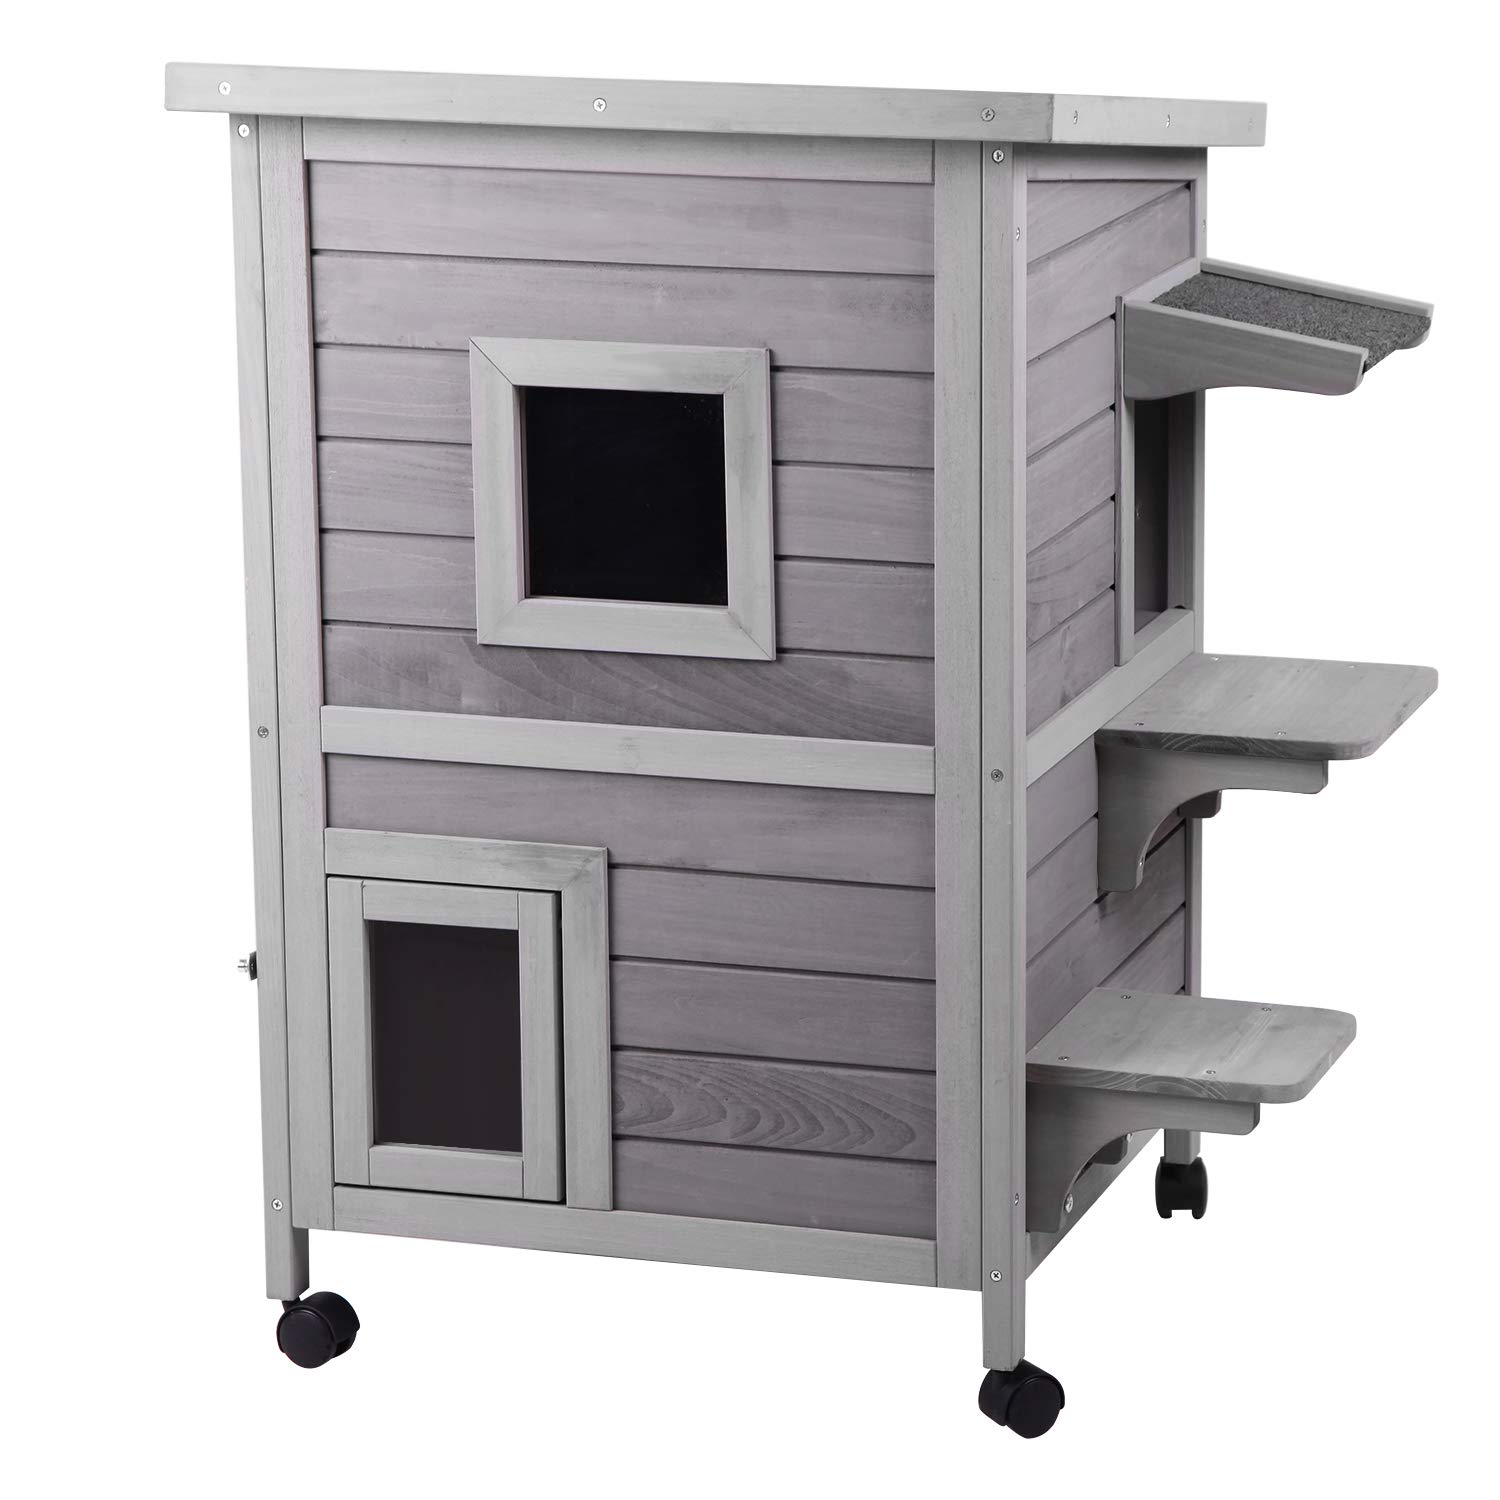 Aivituvin 2-Story Outdoor Cat House Indoor Wooden Kitty Condo with Escape Door - 4 Casters Included by Aivituvin